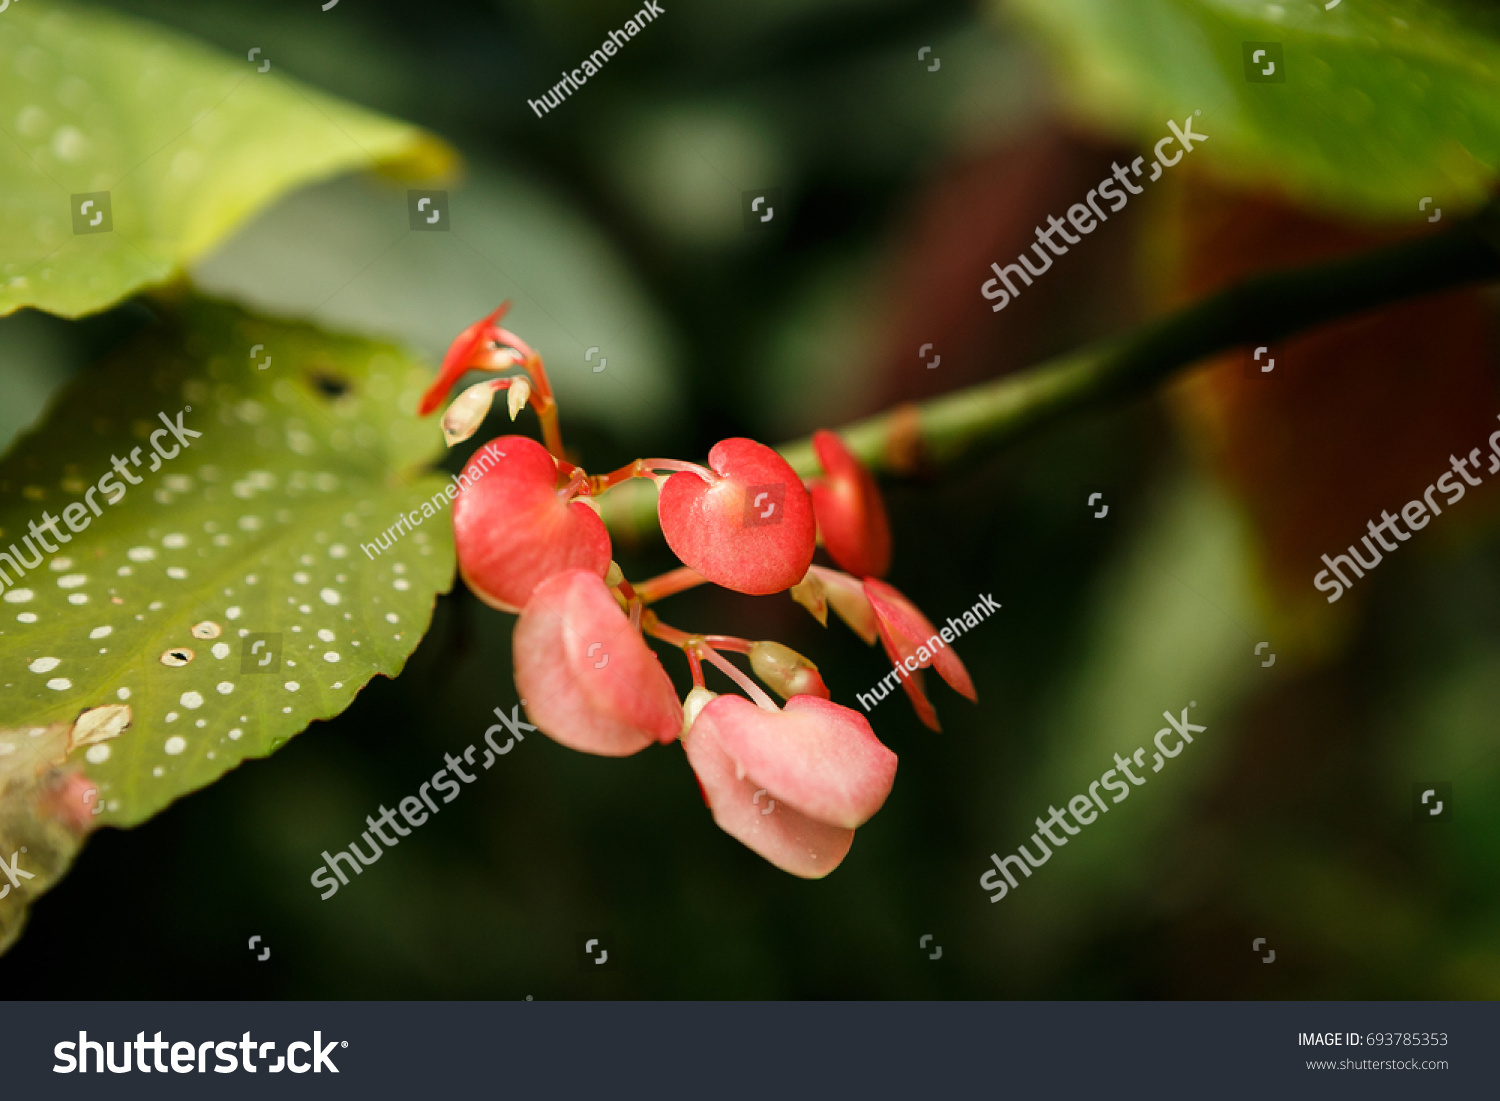 Rare exotic tropical pink flowers grow stock photo edit now rare exotic tropical pink flowers grow on green background in greenhouseautiful flower growing in izmirmasajfo